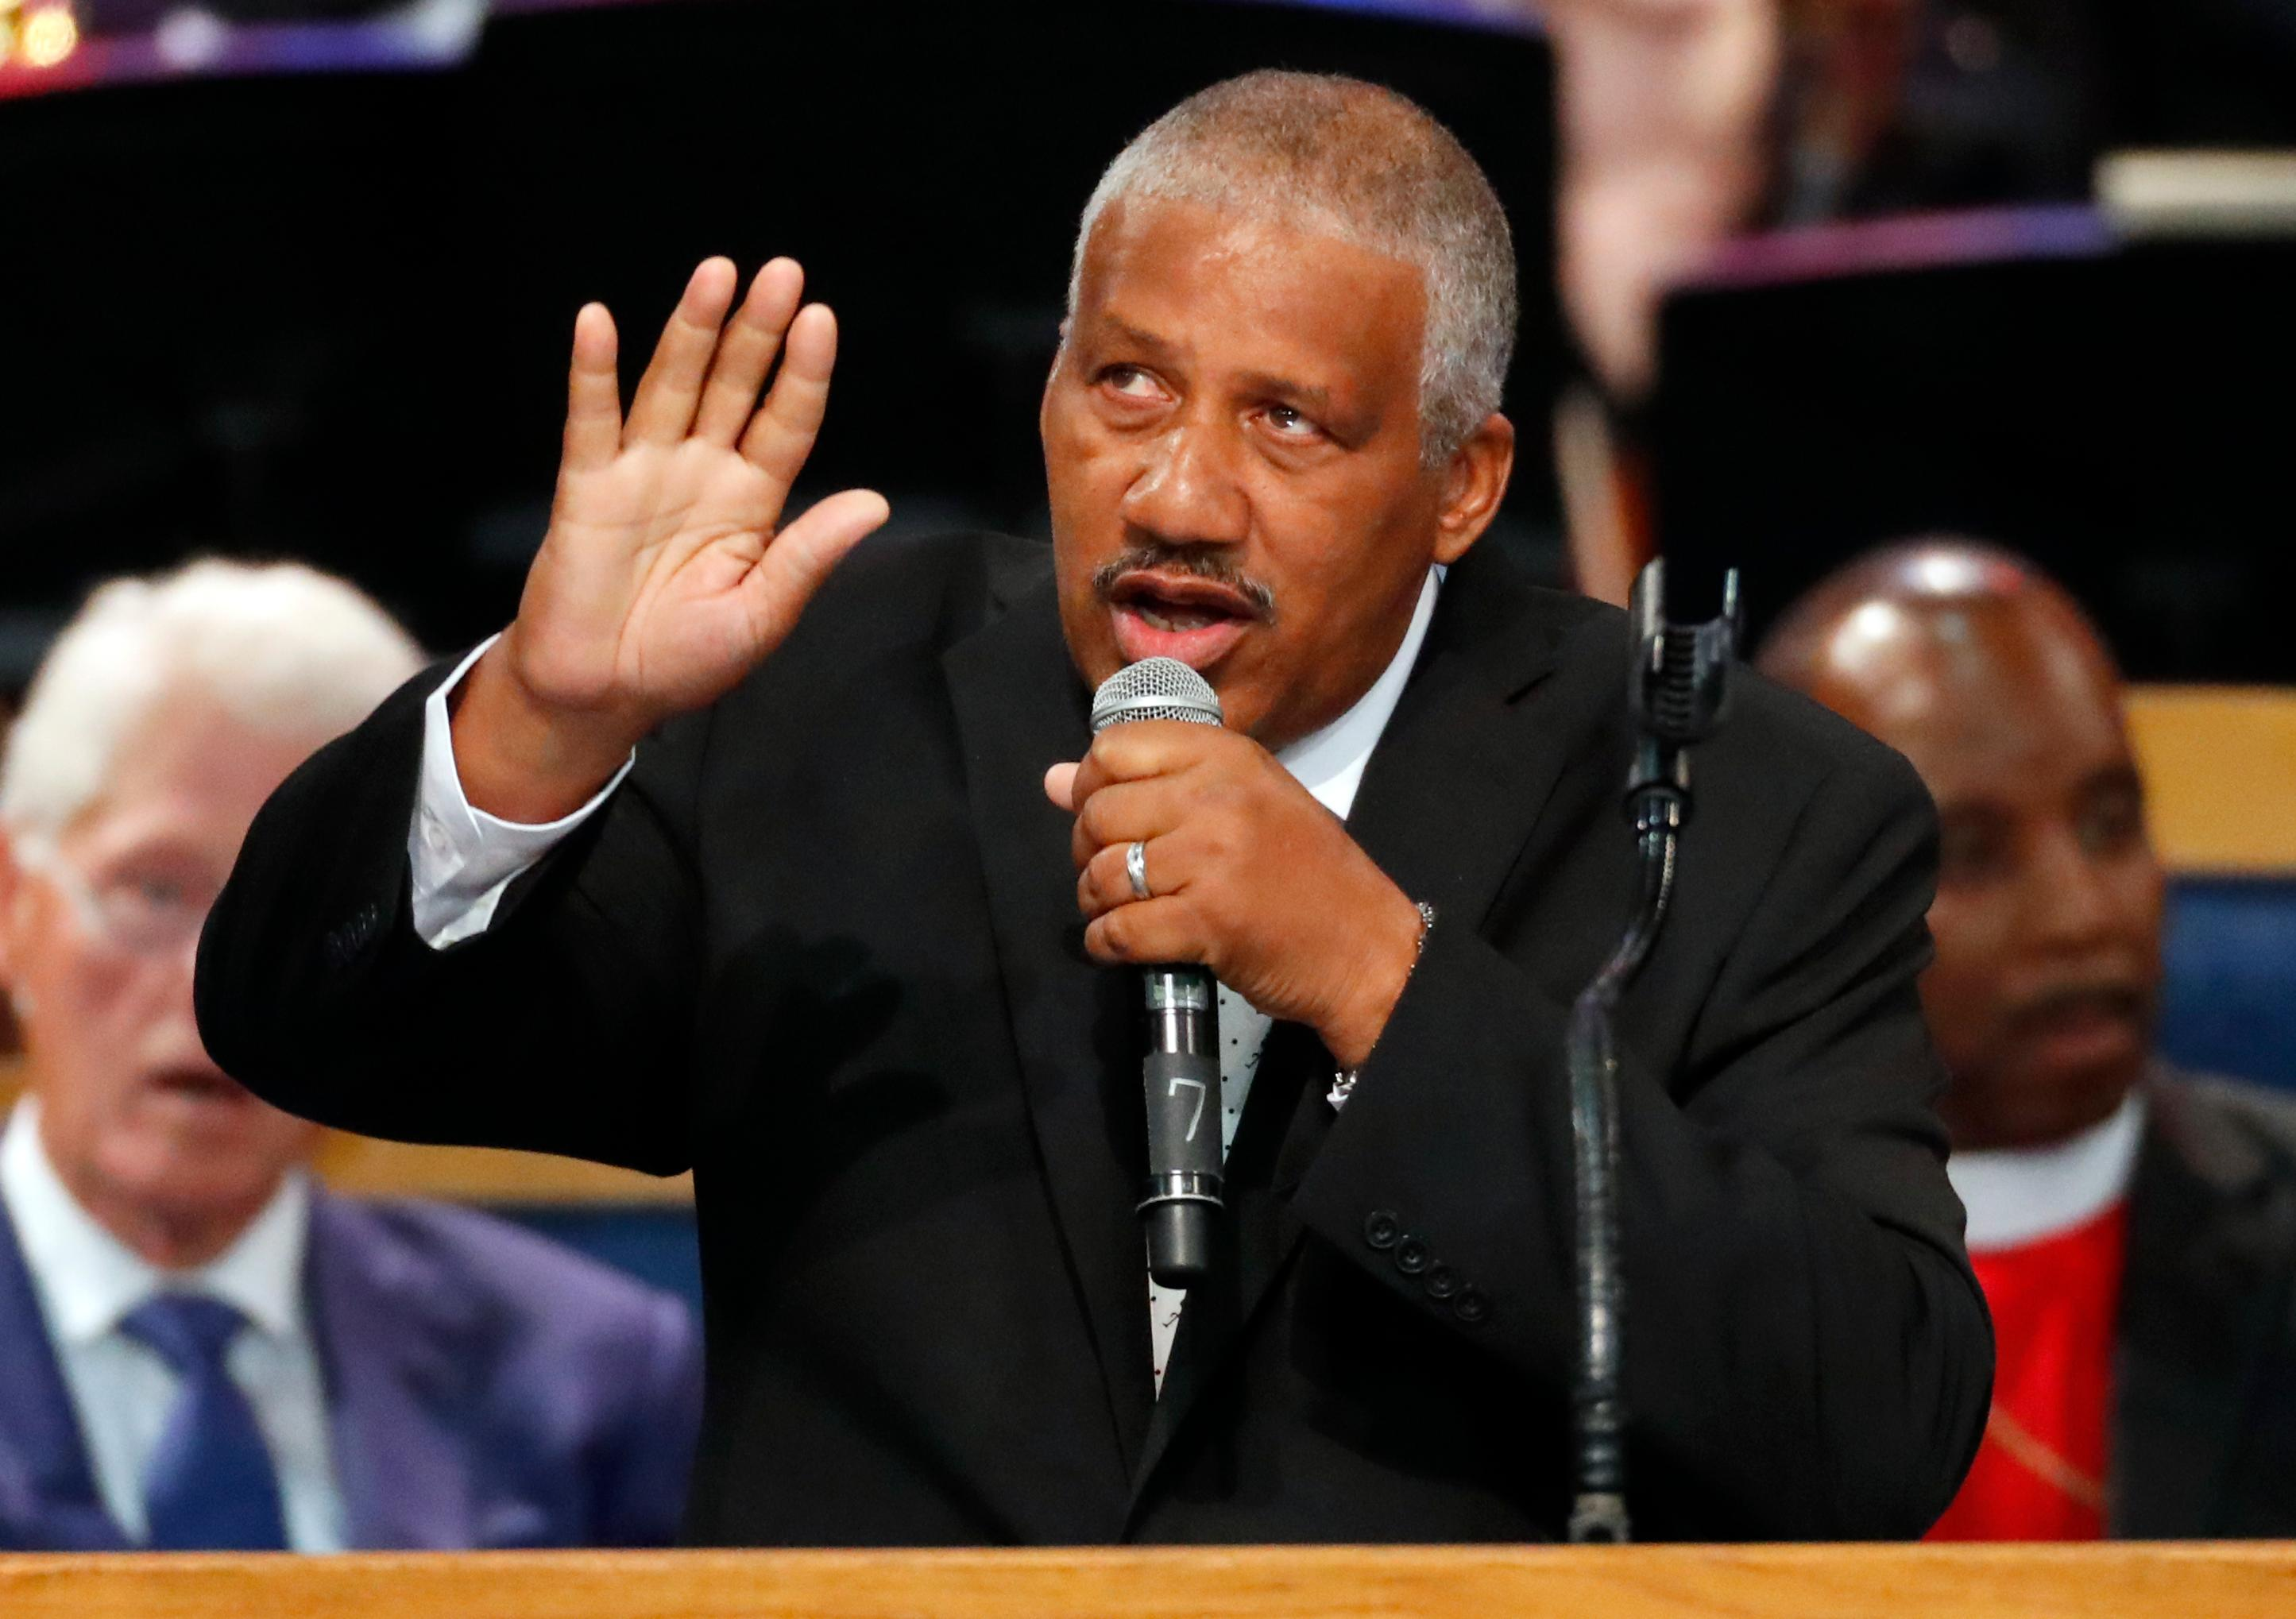 Edward Franklin, son of Aretha Franklin, performs during the funeral service for his mother at Greater Grace Temple, Friday, Aug. 31, 2018, in Detroit. (AP Photo/Paul Sancya)